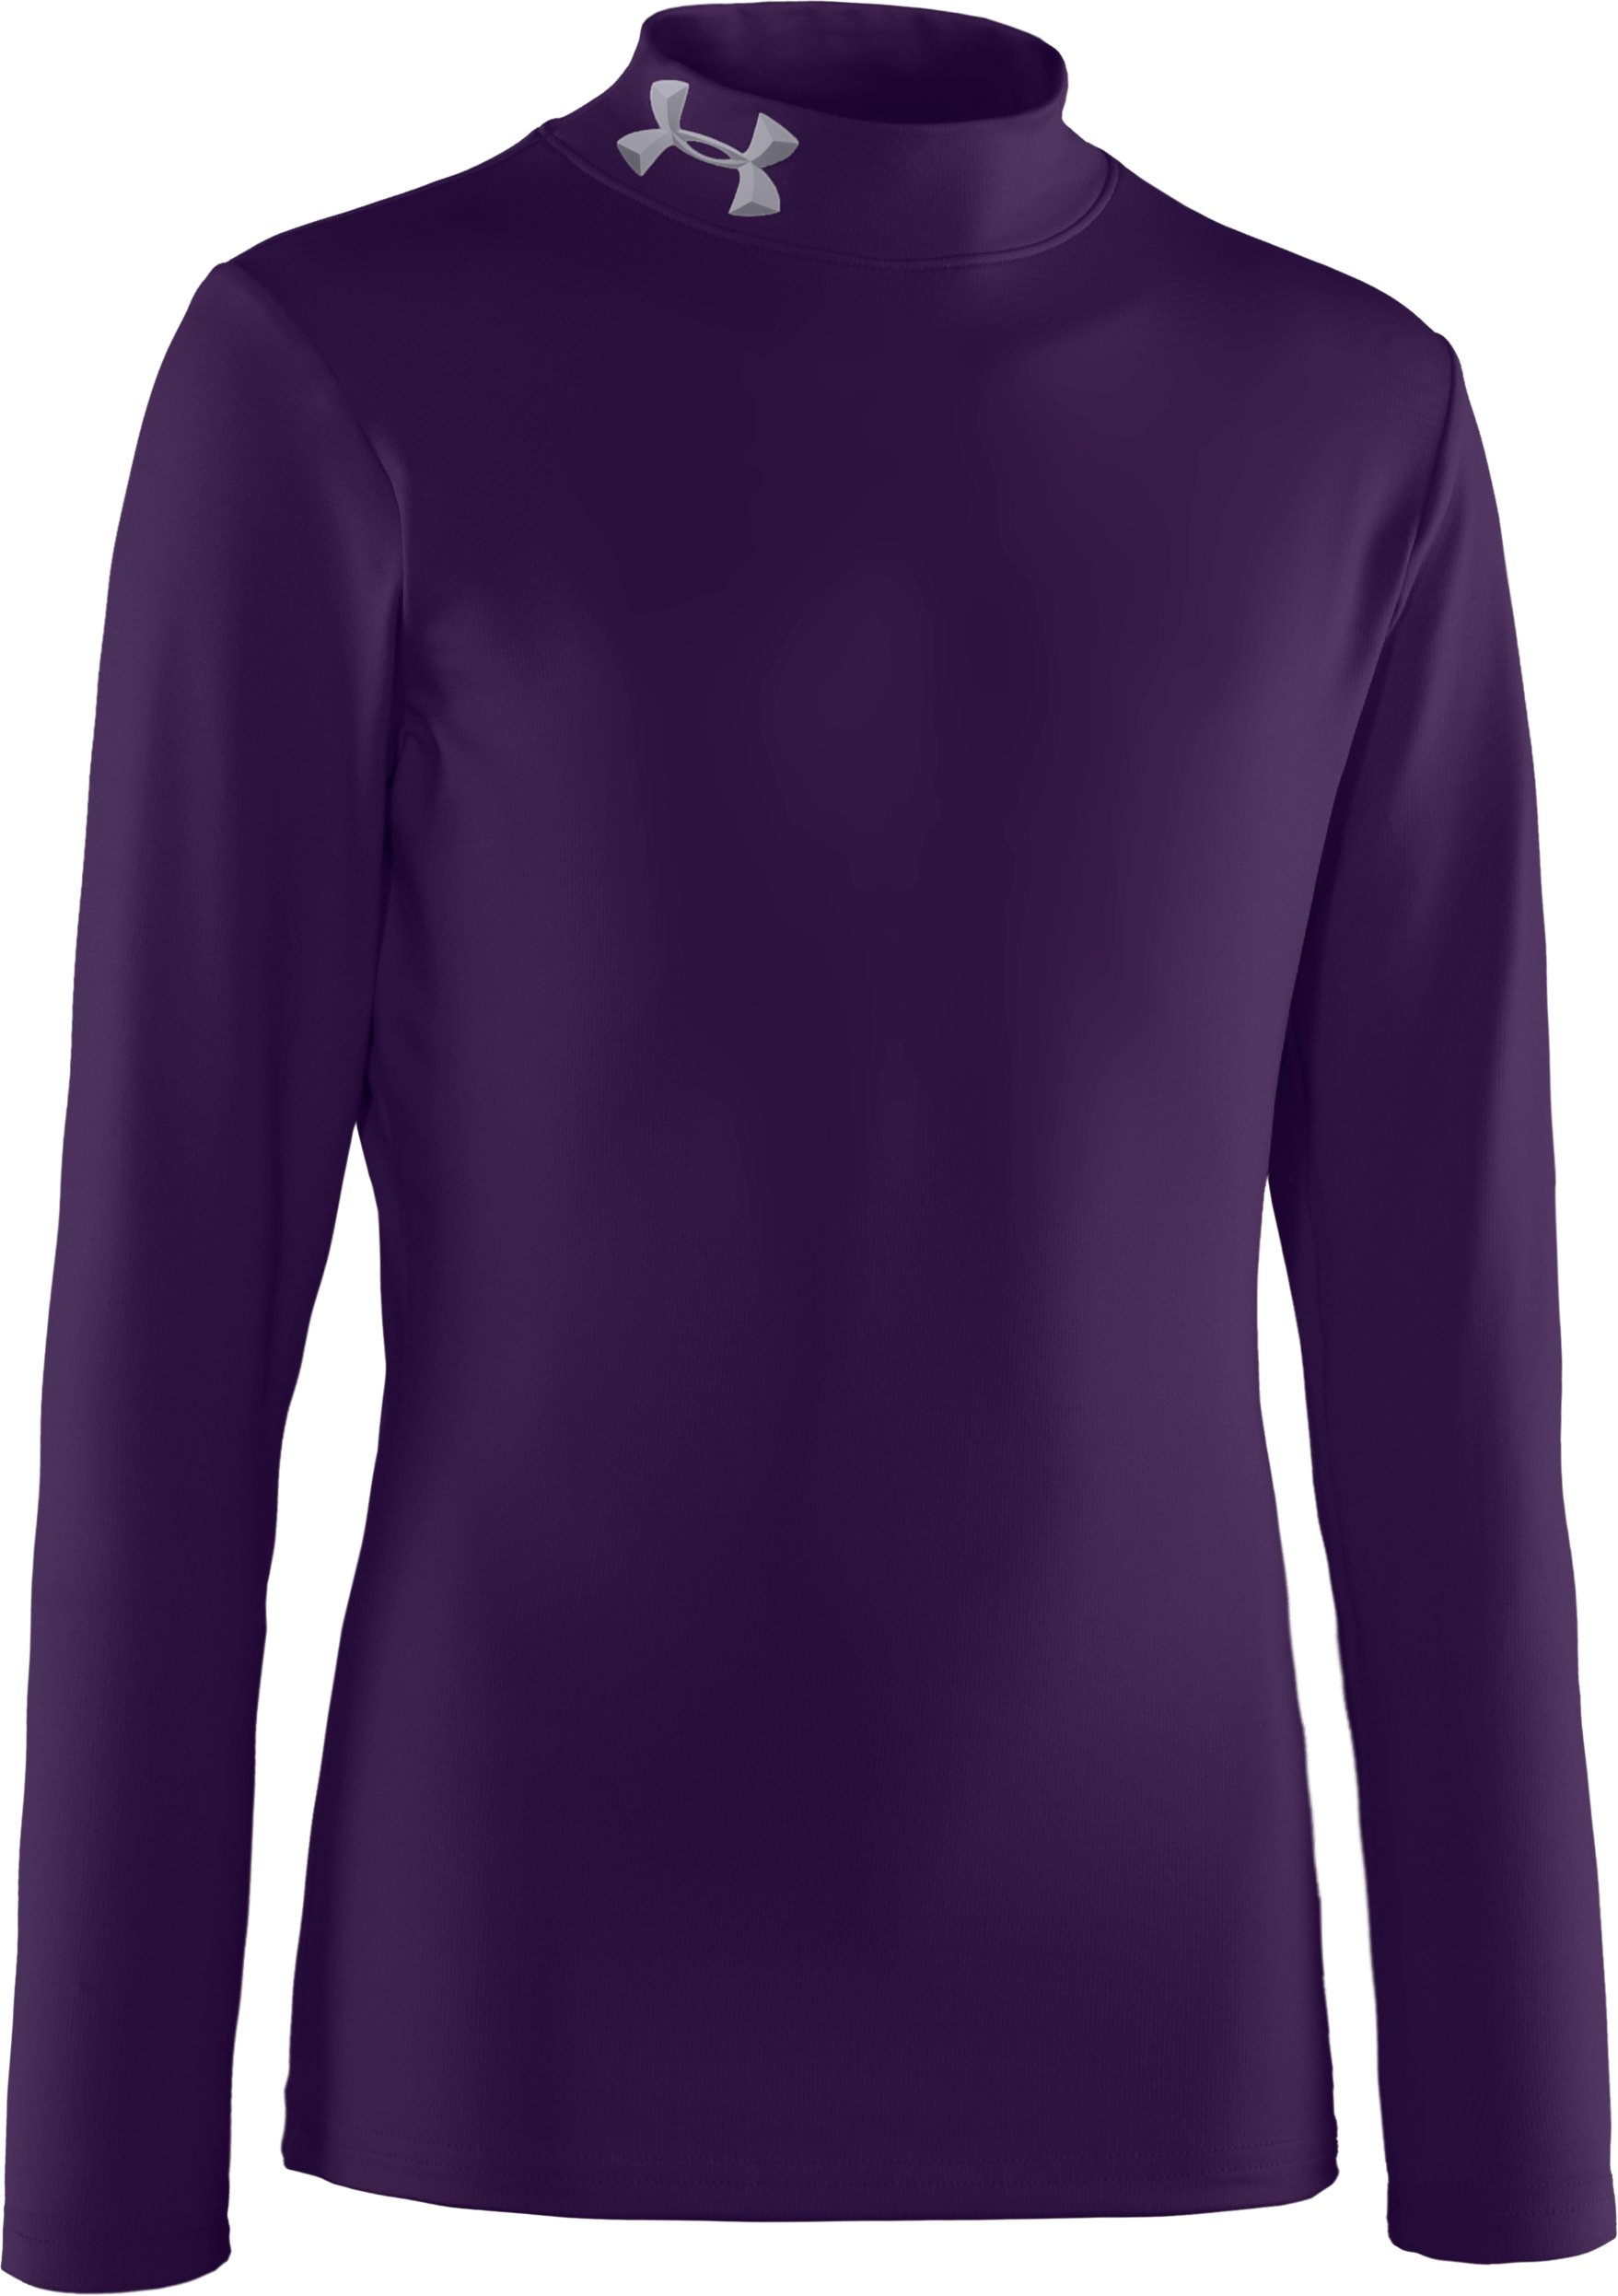 Boys' ColdGear® Evo Fitted Baselayer Mock, Purple, zoomed image